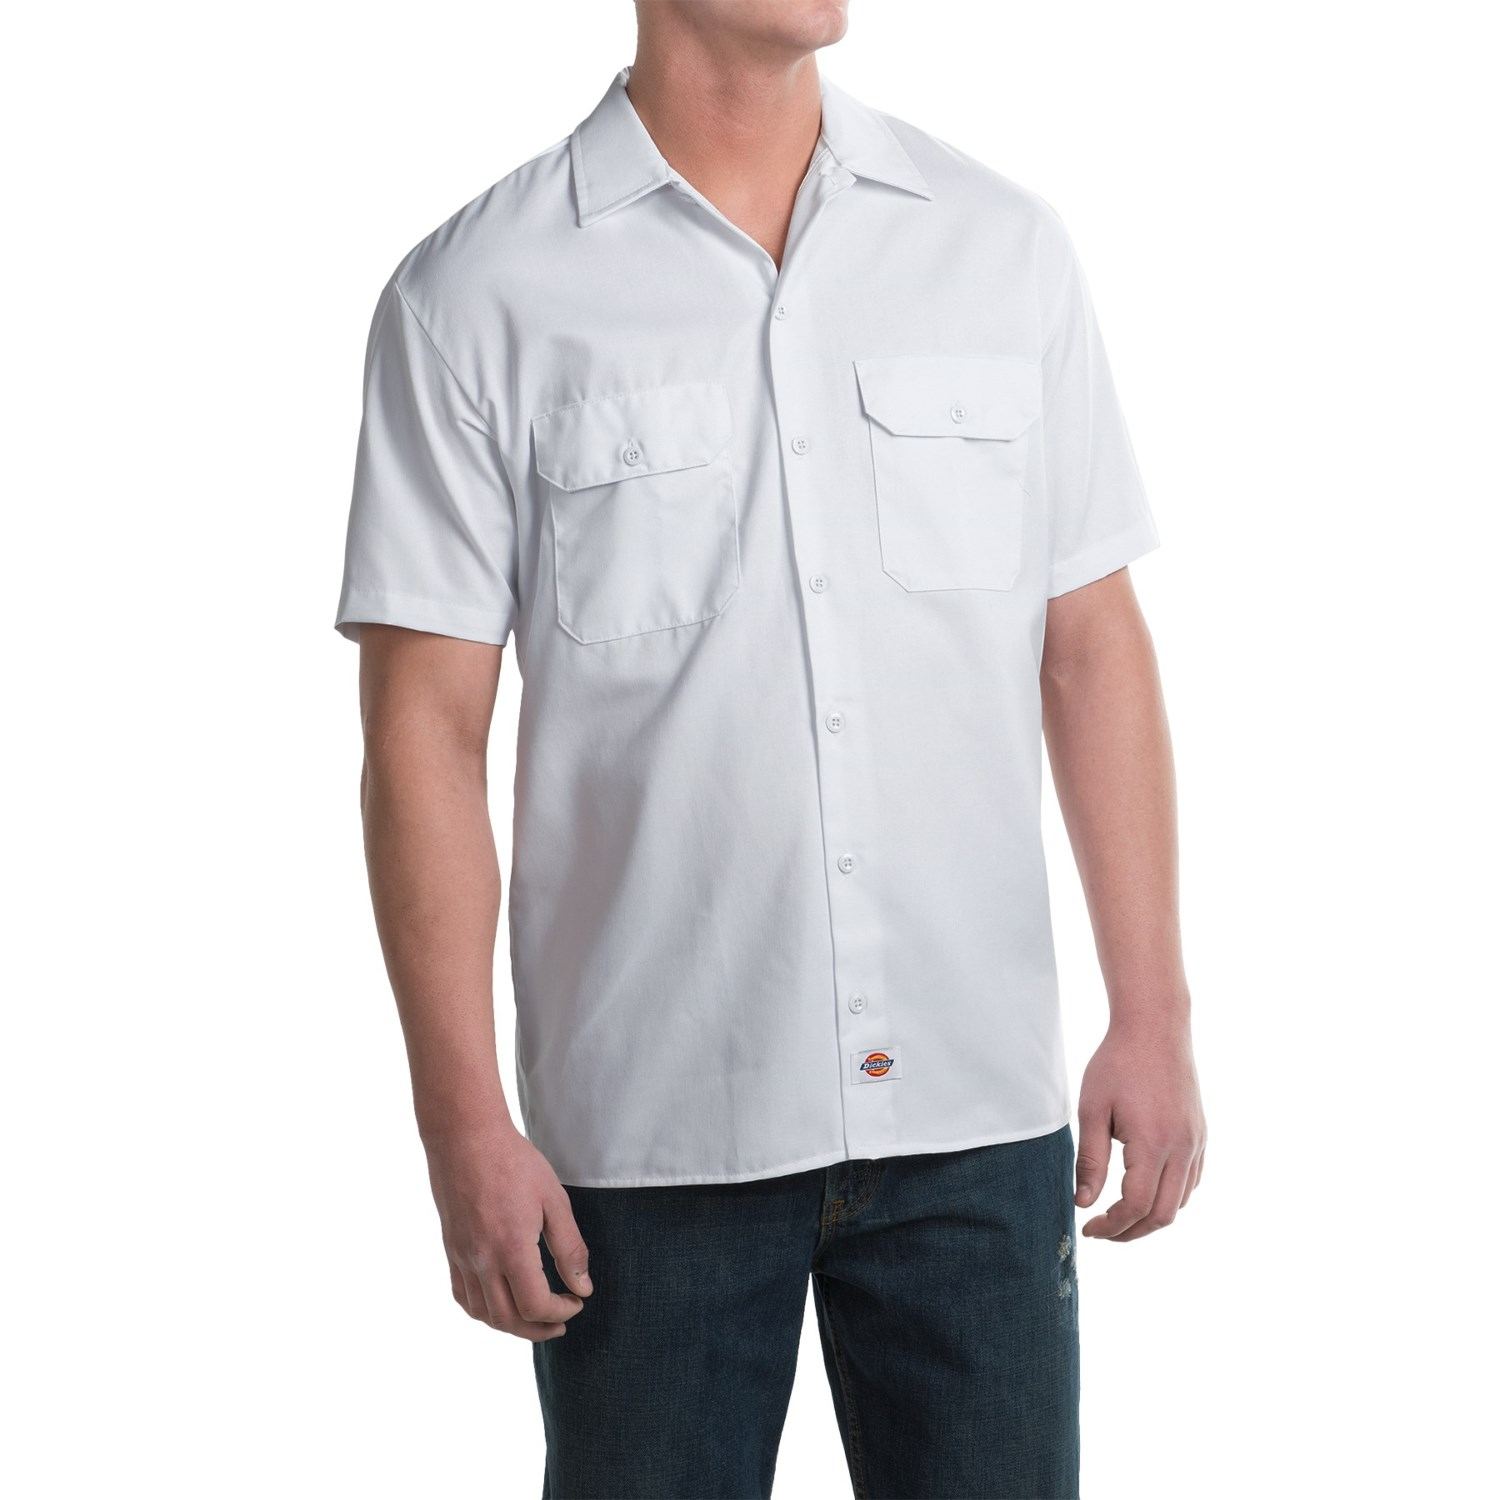 Van Heusen Men's Long Sleeve Twill Dress Shirt Alpha Sized. Dickies Men's Long-Sleeve Work Shirt Stain Release Wrinkle Resistant Cotton/Poly. by Dickies. $ - $ $ 14 $ 97 77 Prime. FREE Shipping on eligible orders. Some sizes/colors are Prime eligible. out of 5 stars 1,